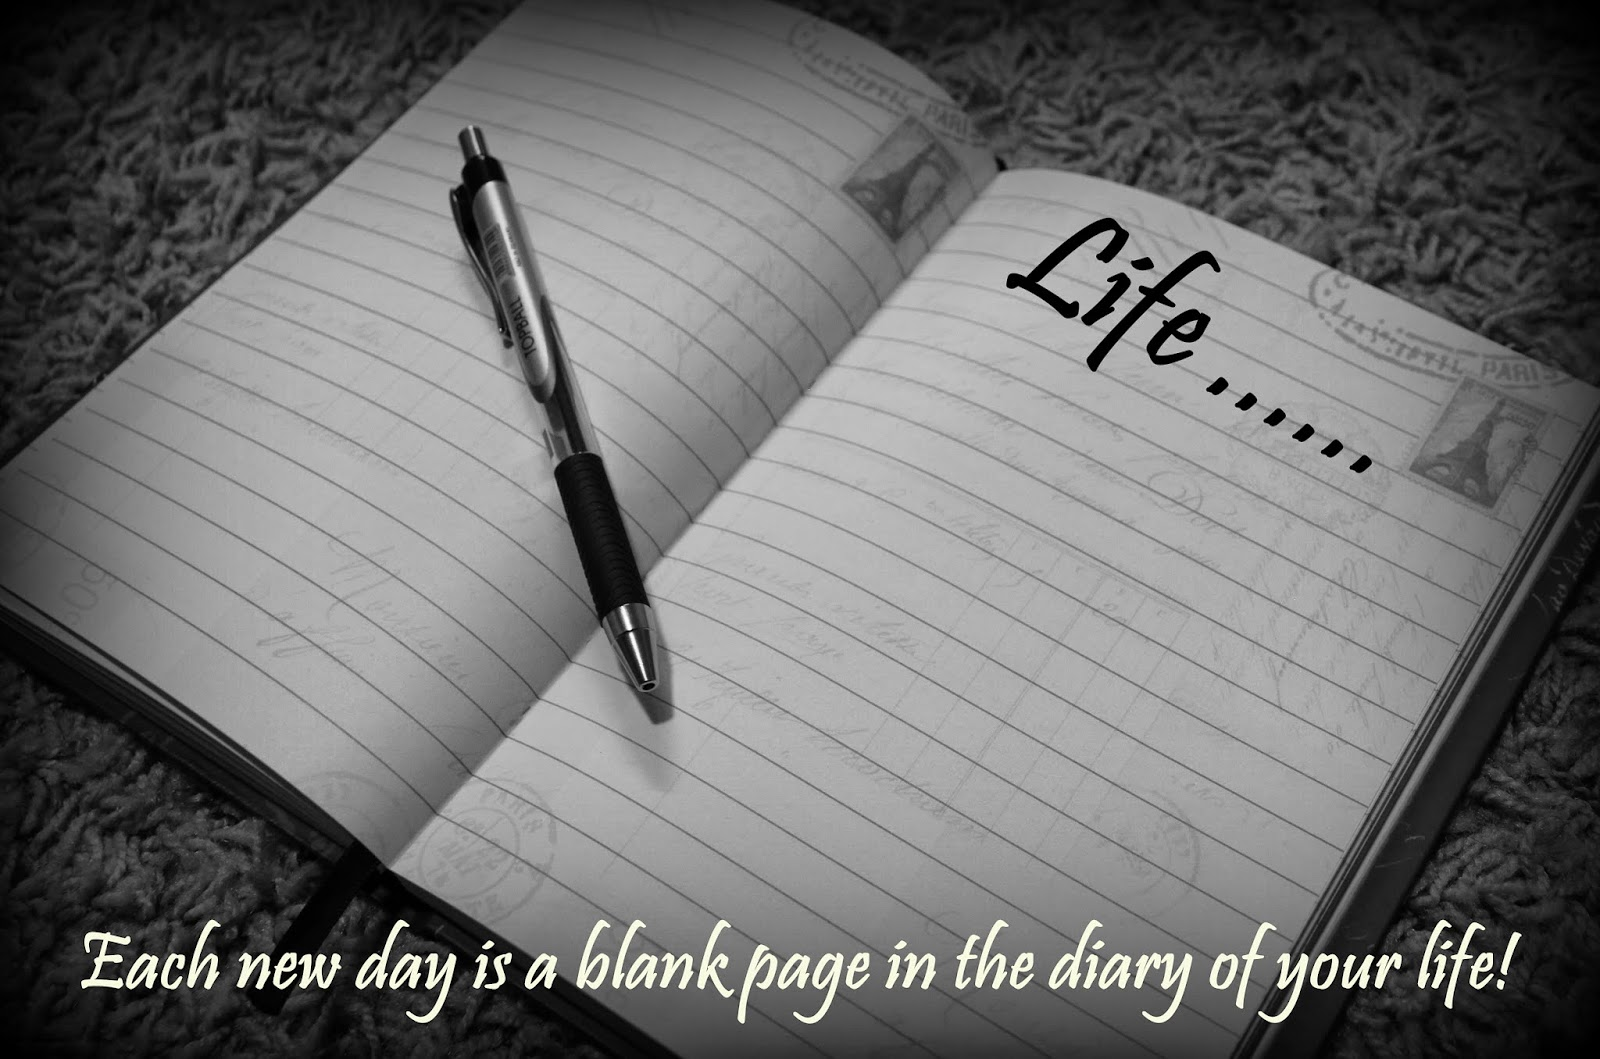 Life... A Blank Page